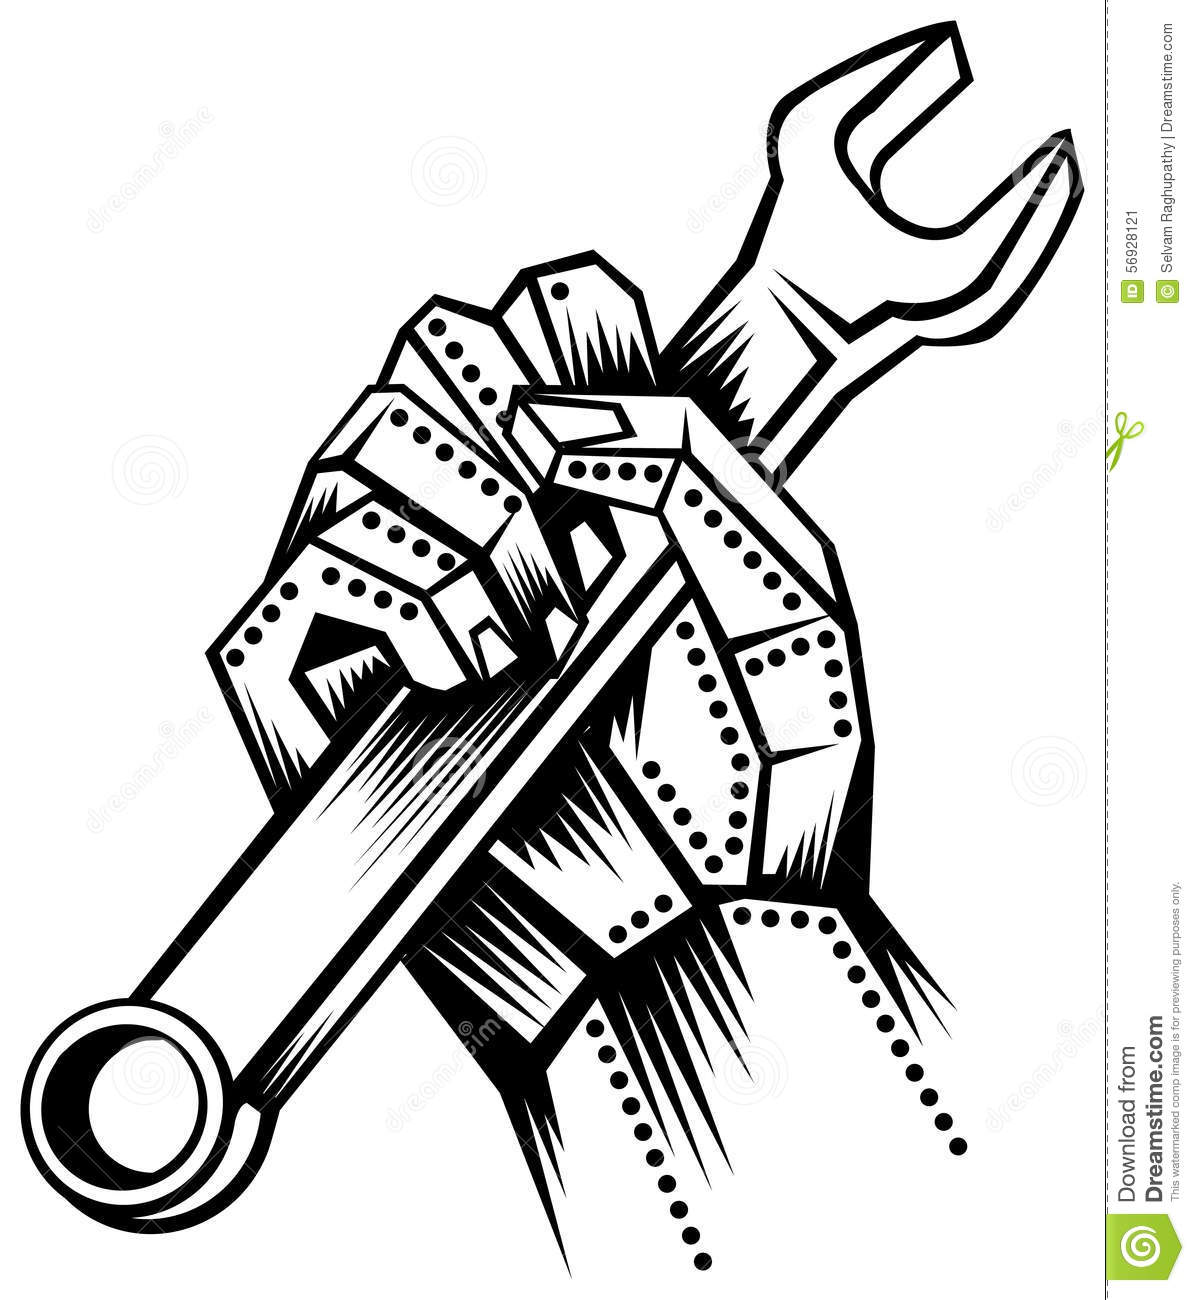 Metal Hand With Spanner Stock Vector